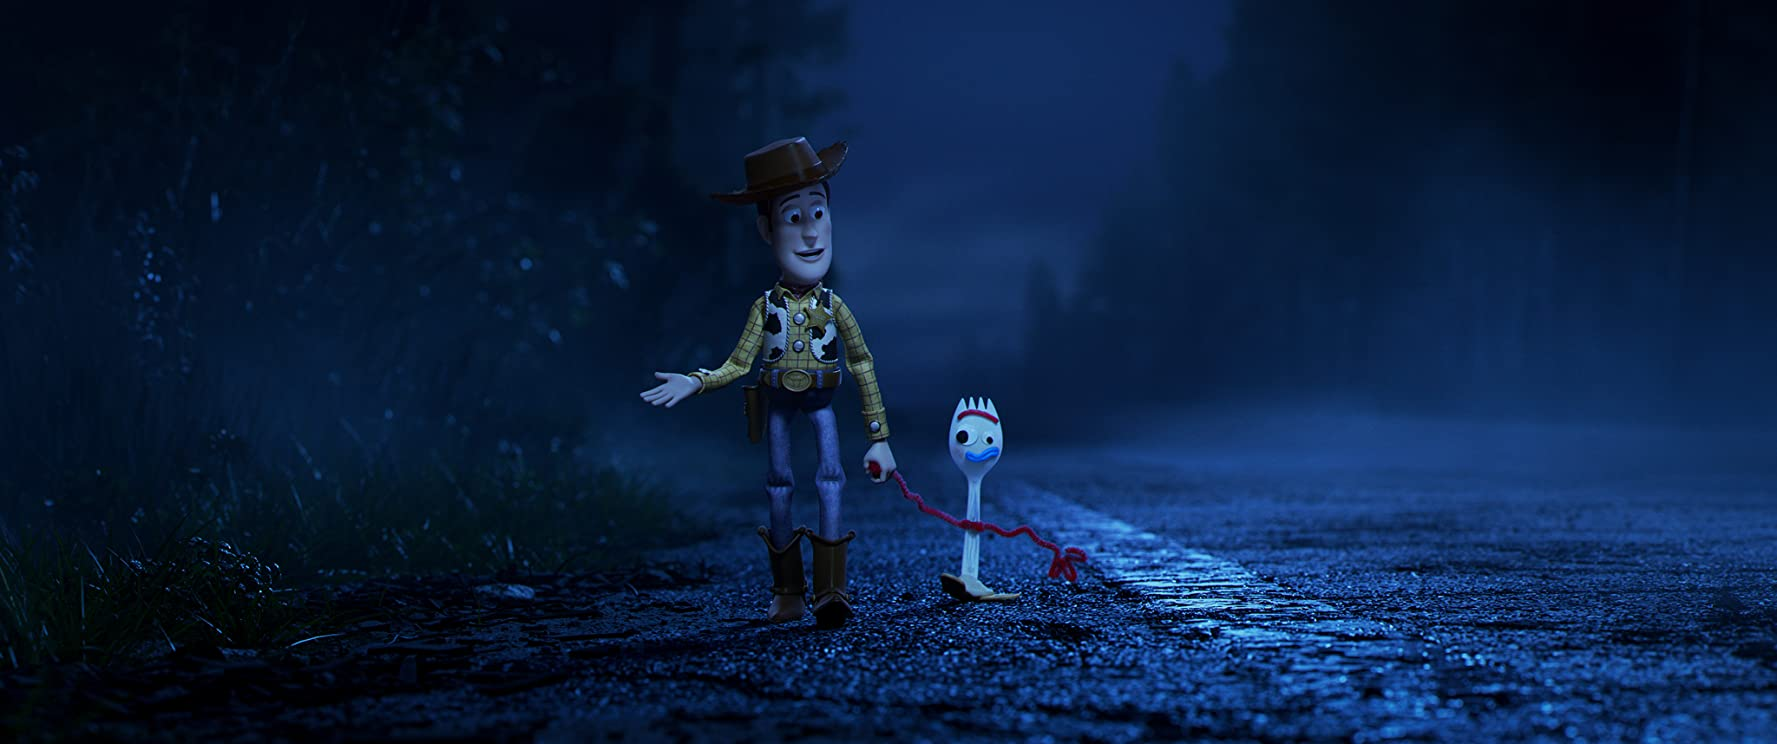 Tom Hanks and Tony Hale in Toy Story 4 (2019)